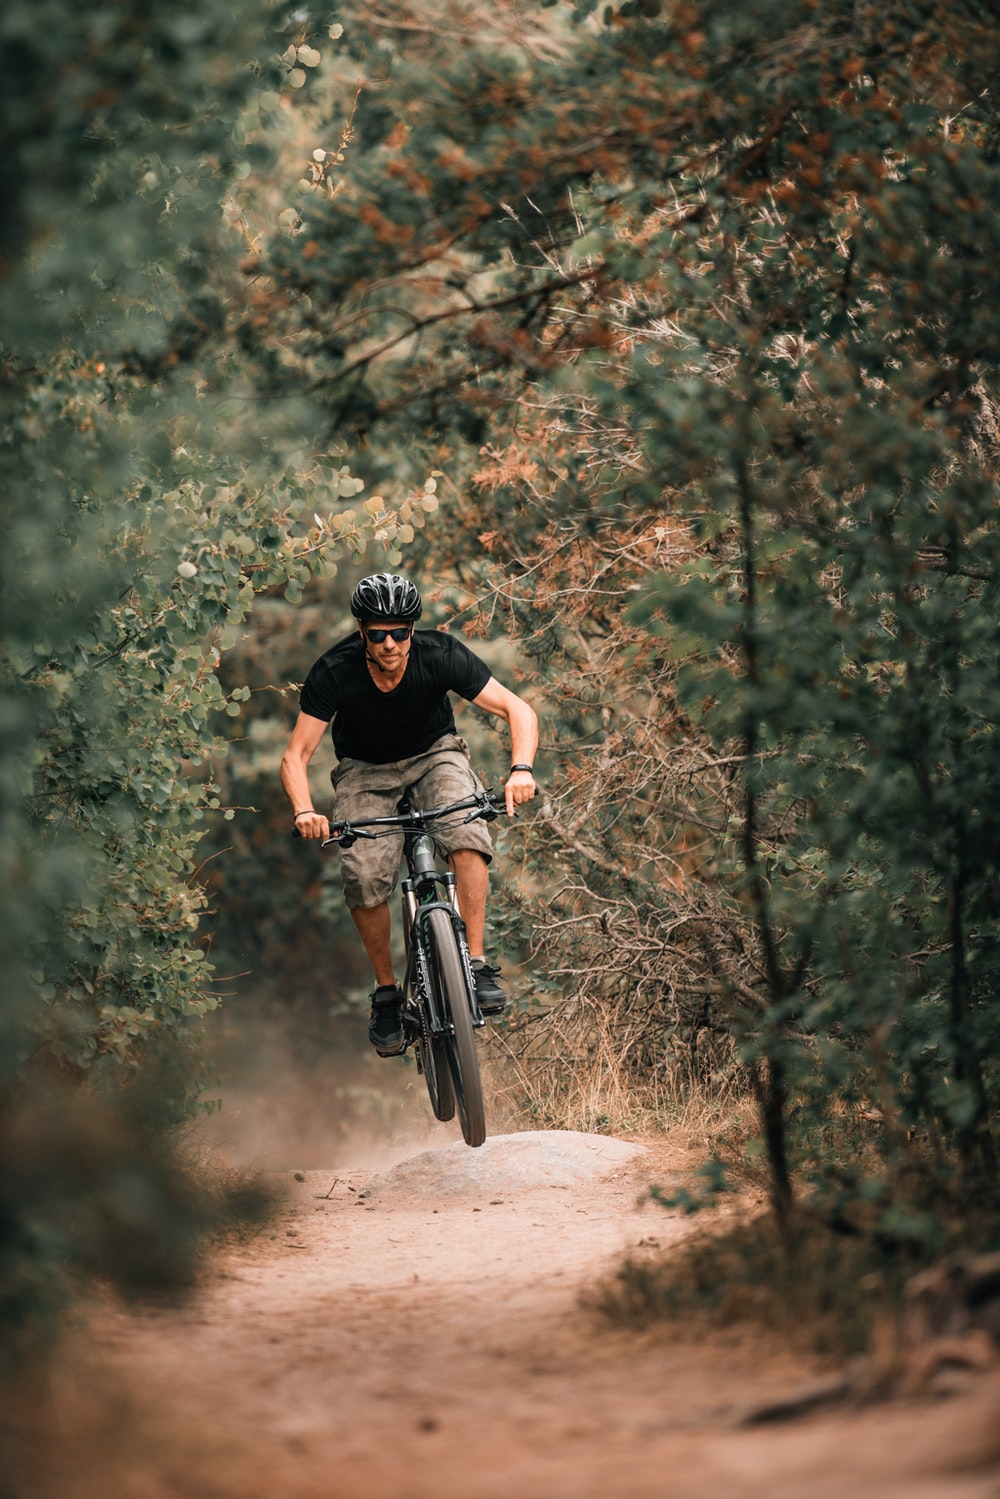 man on bike in downhill dirt road